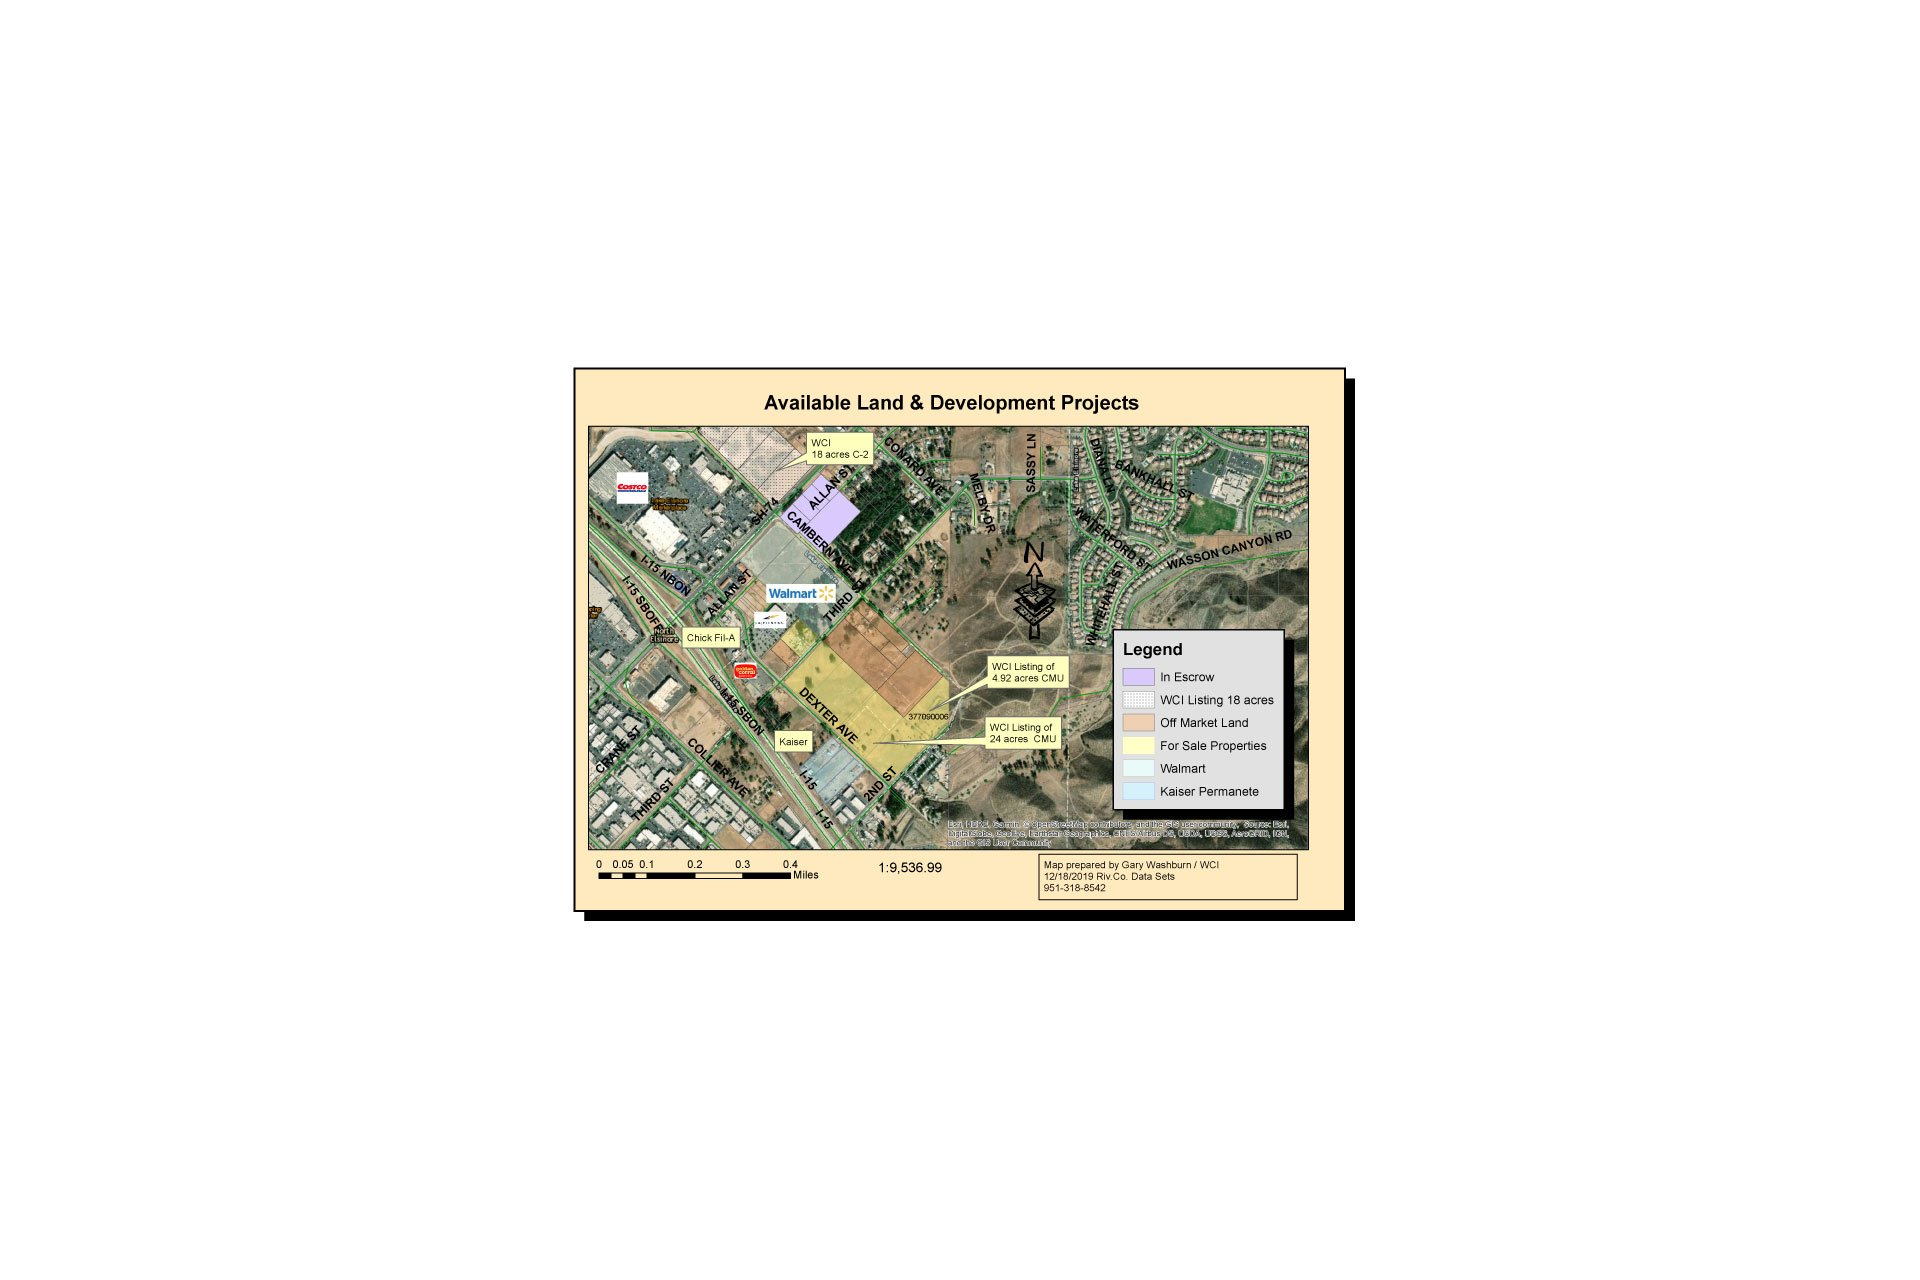 WCI land available for development